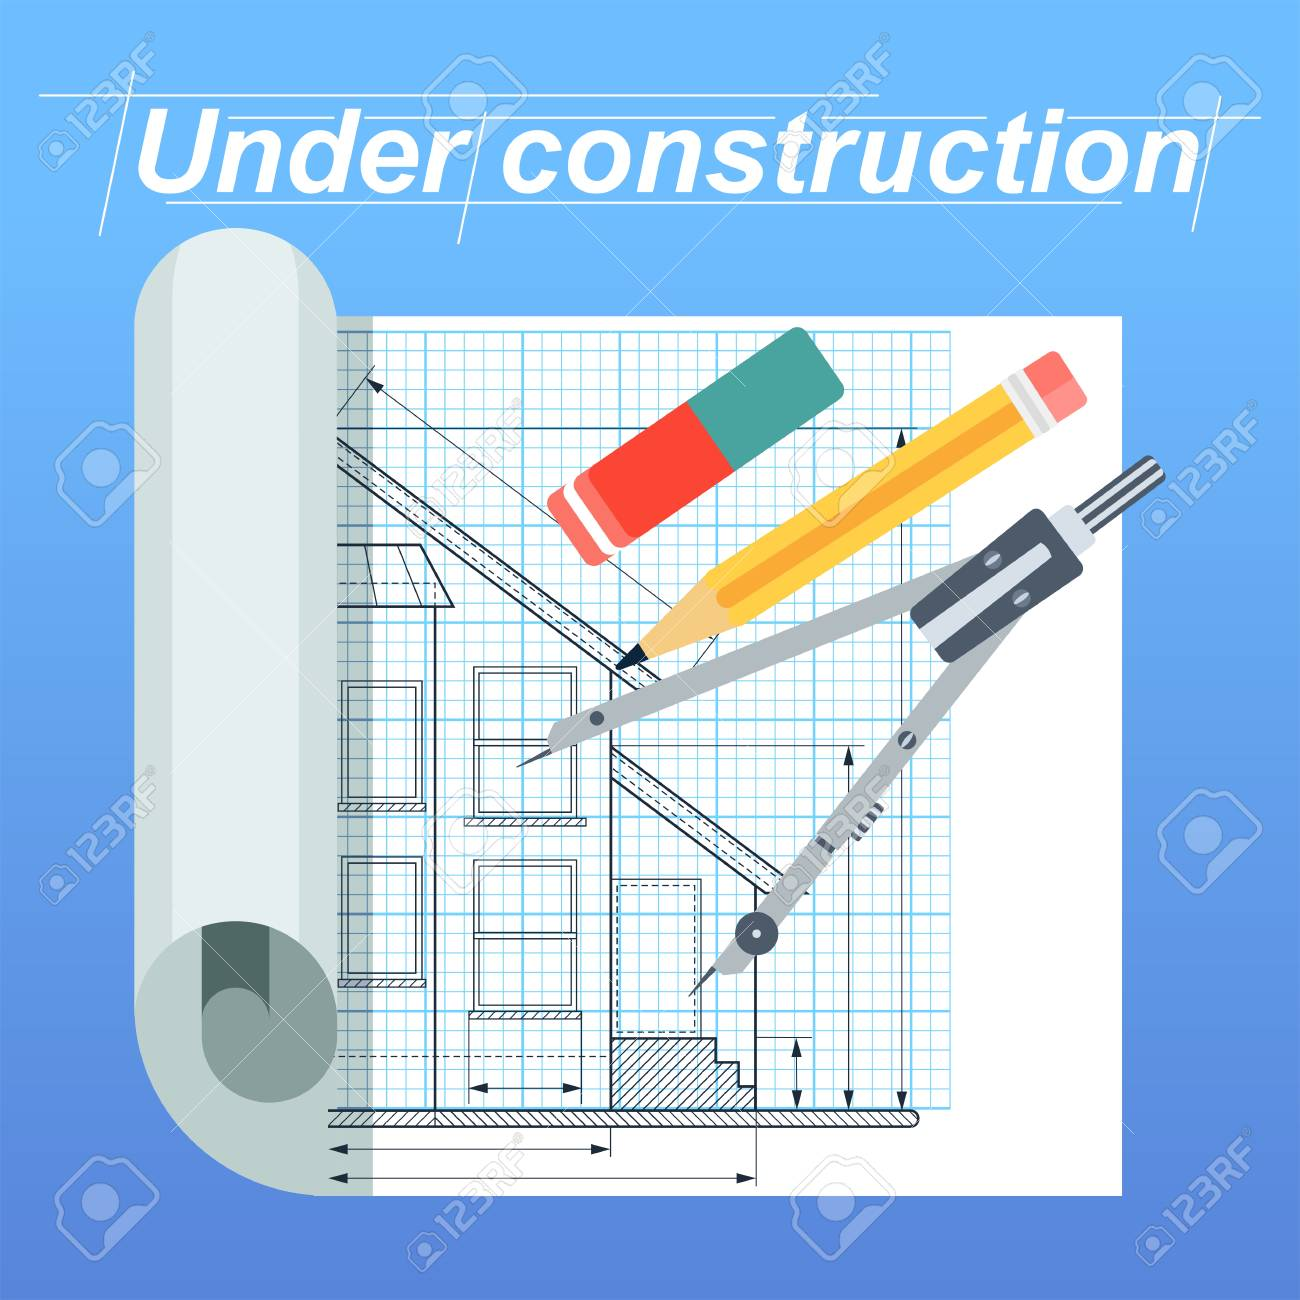 Construction, Architect And Engineering Drawing For Civil Industrial Draft.  Drawing And Sketching On Draft